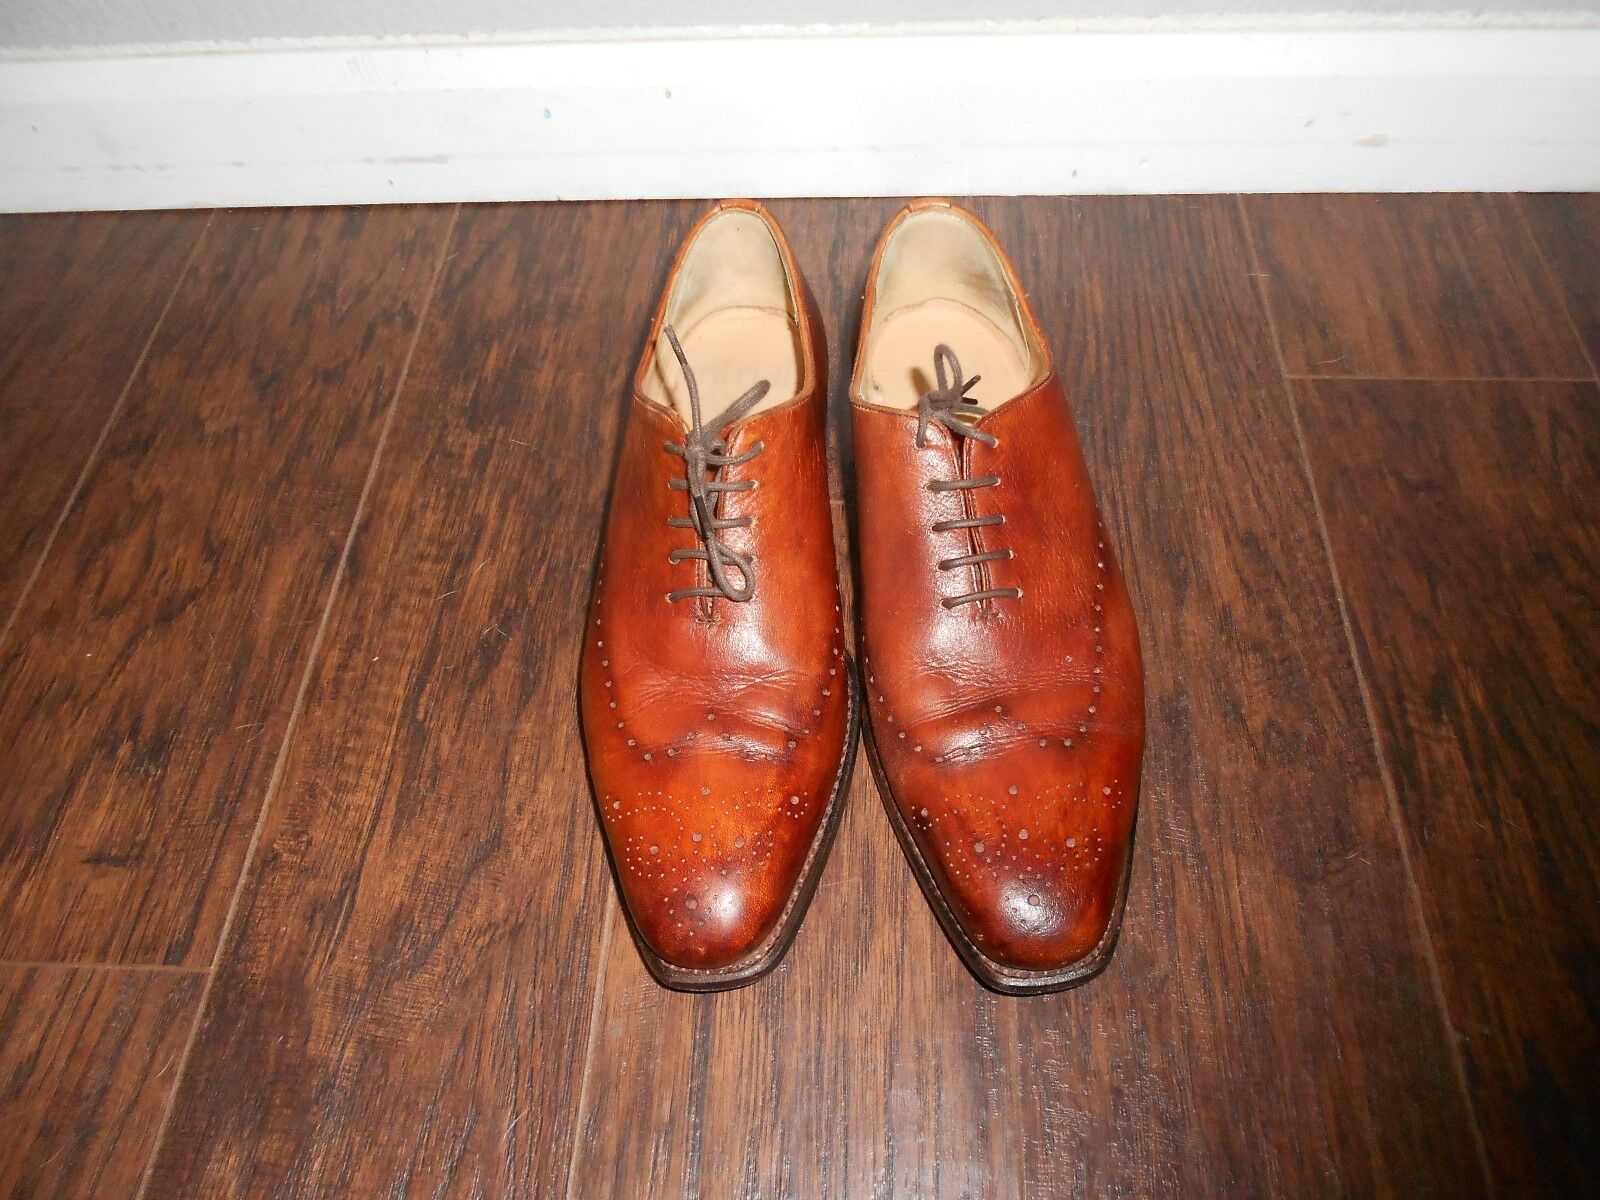 ED Et Al shoesmakers Men's Professional Dress shoes size 42 Brown